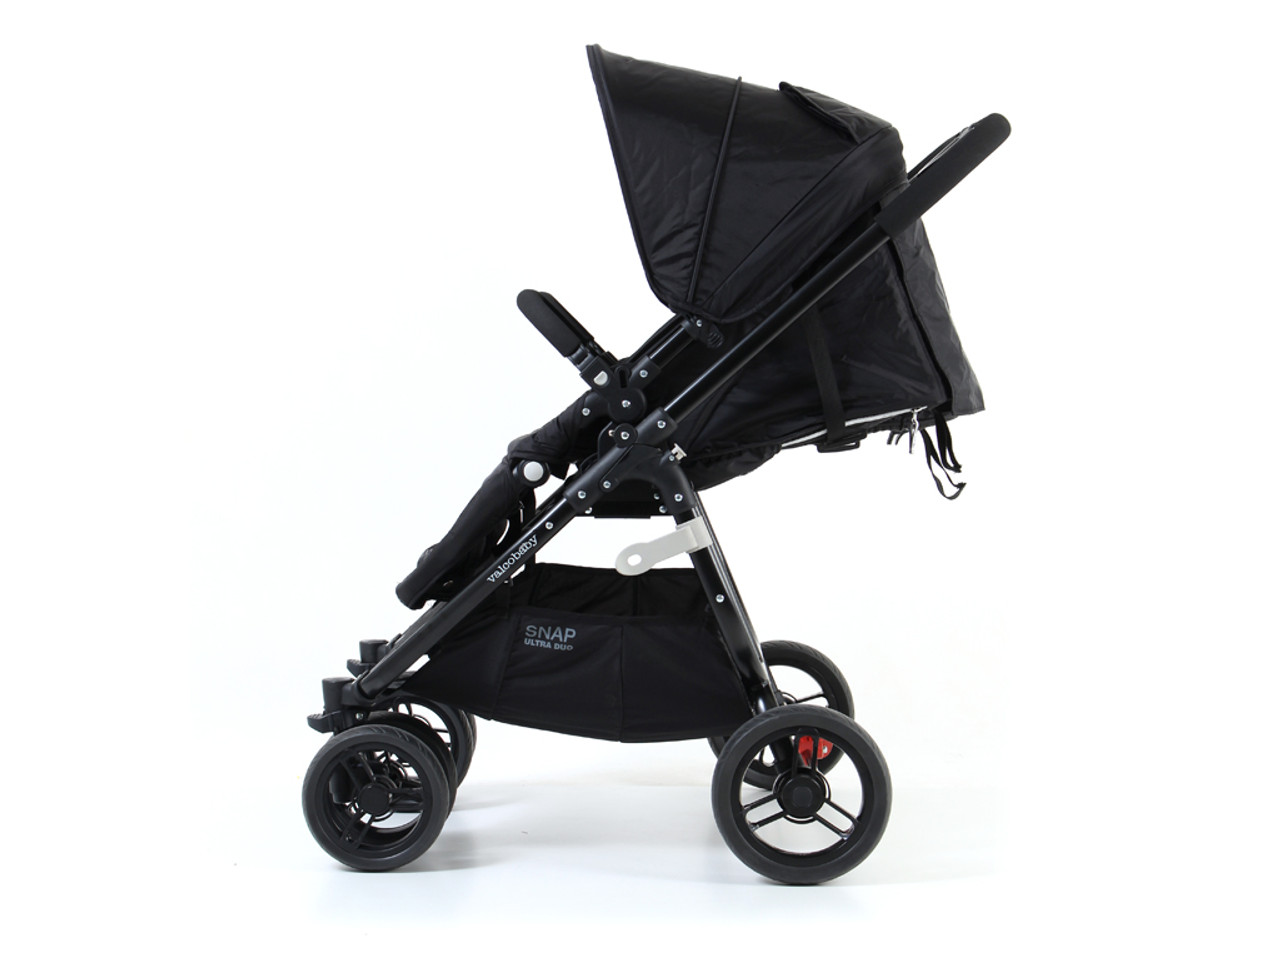 Valco Baby Snap Ultra Duo Coal Black - Twin, side by side pram with removable reversible seats giving options of children facing forward or parent facing.